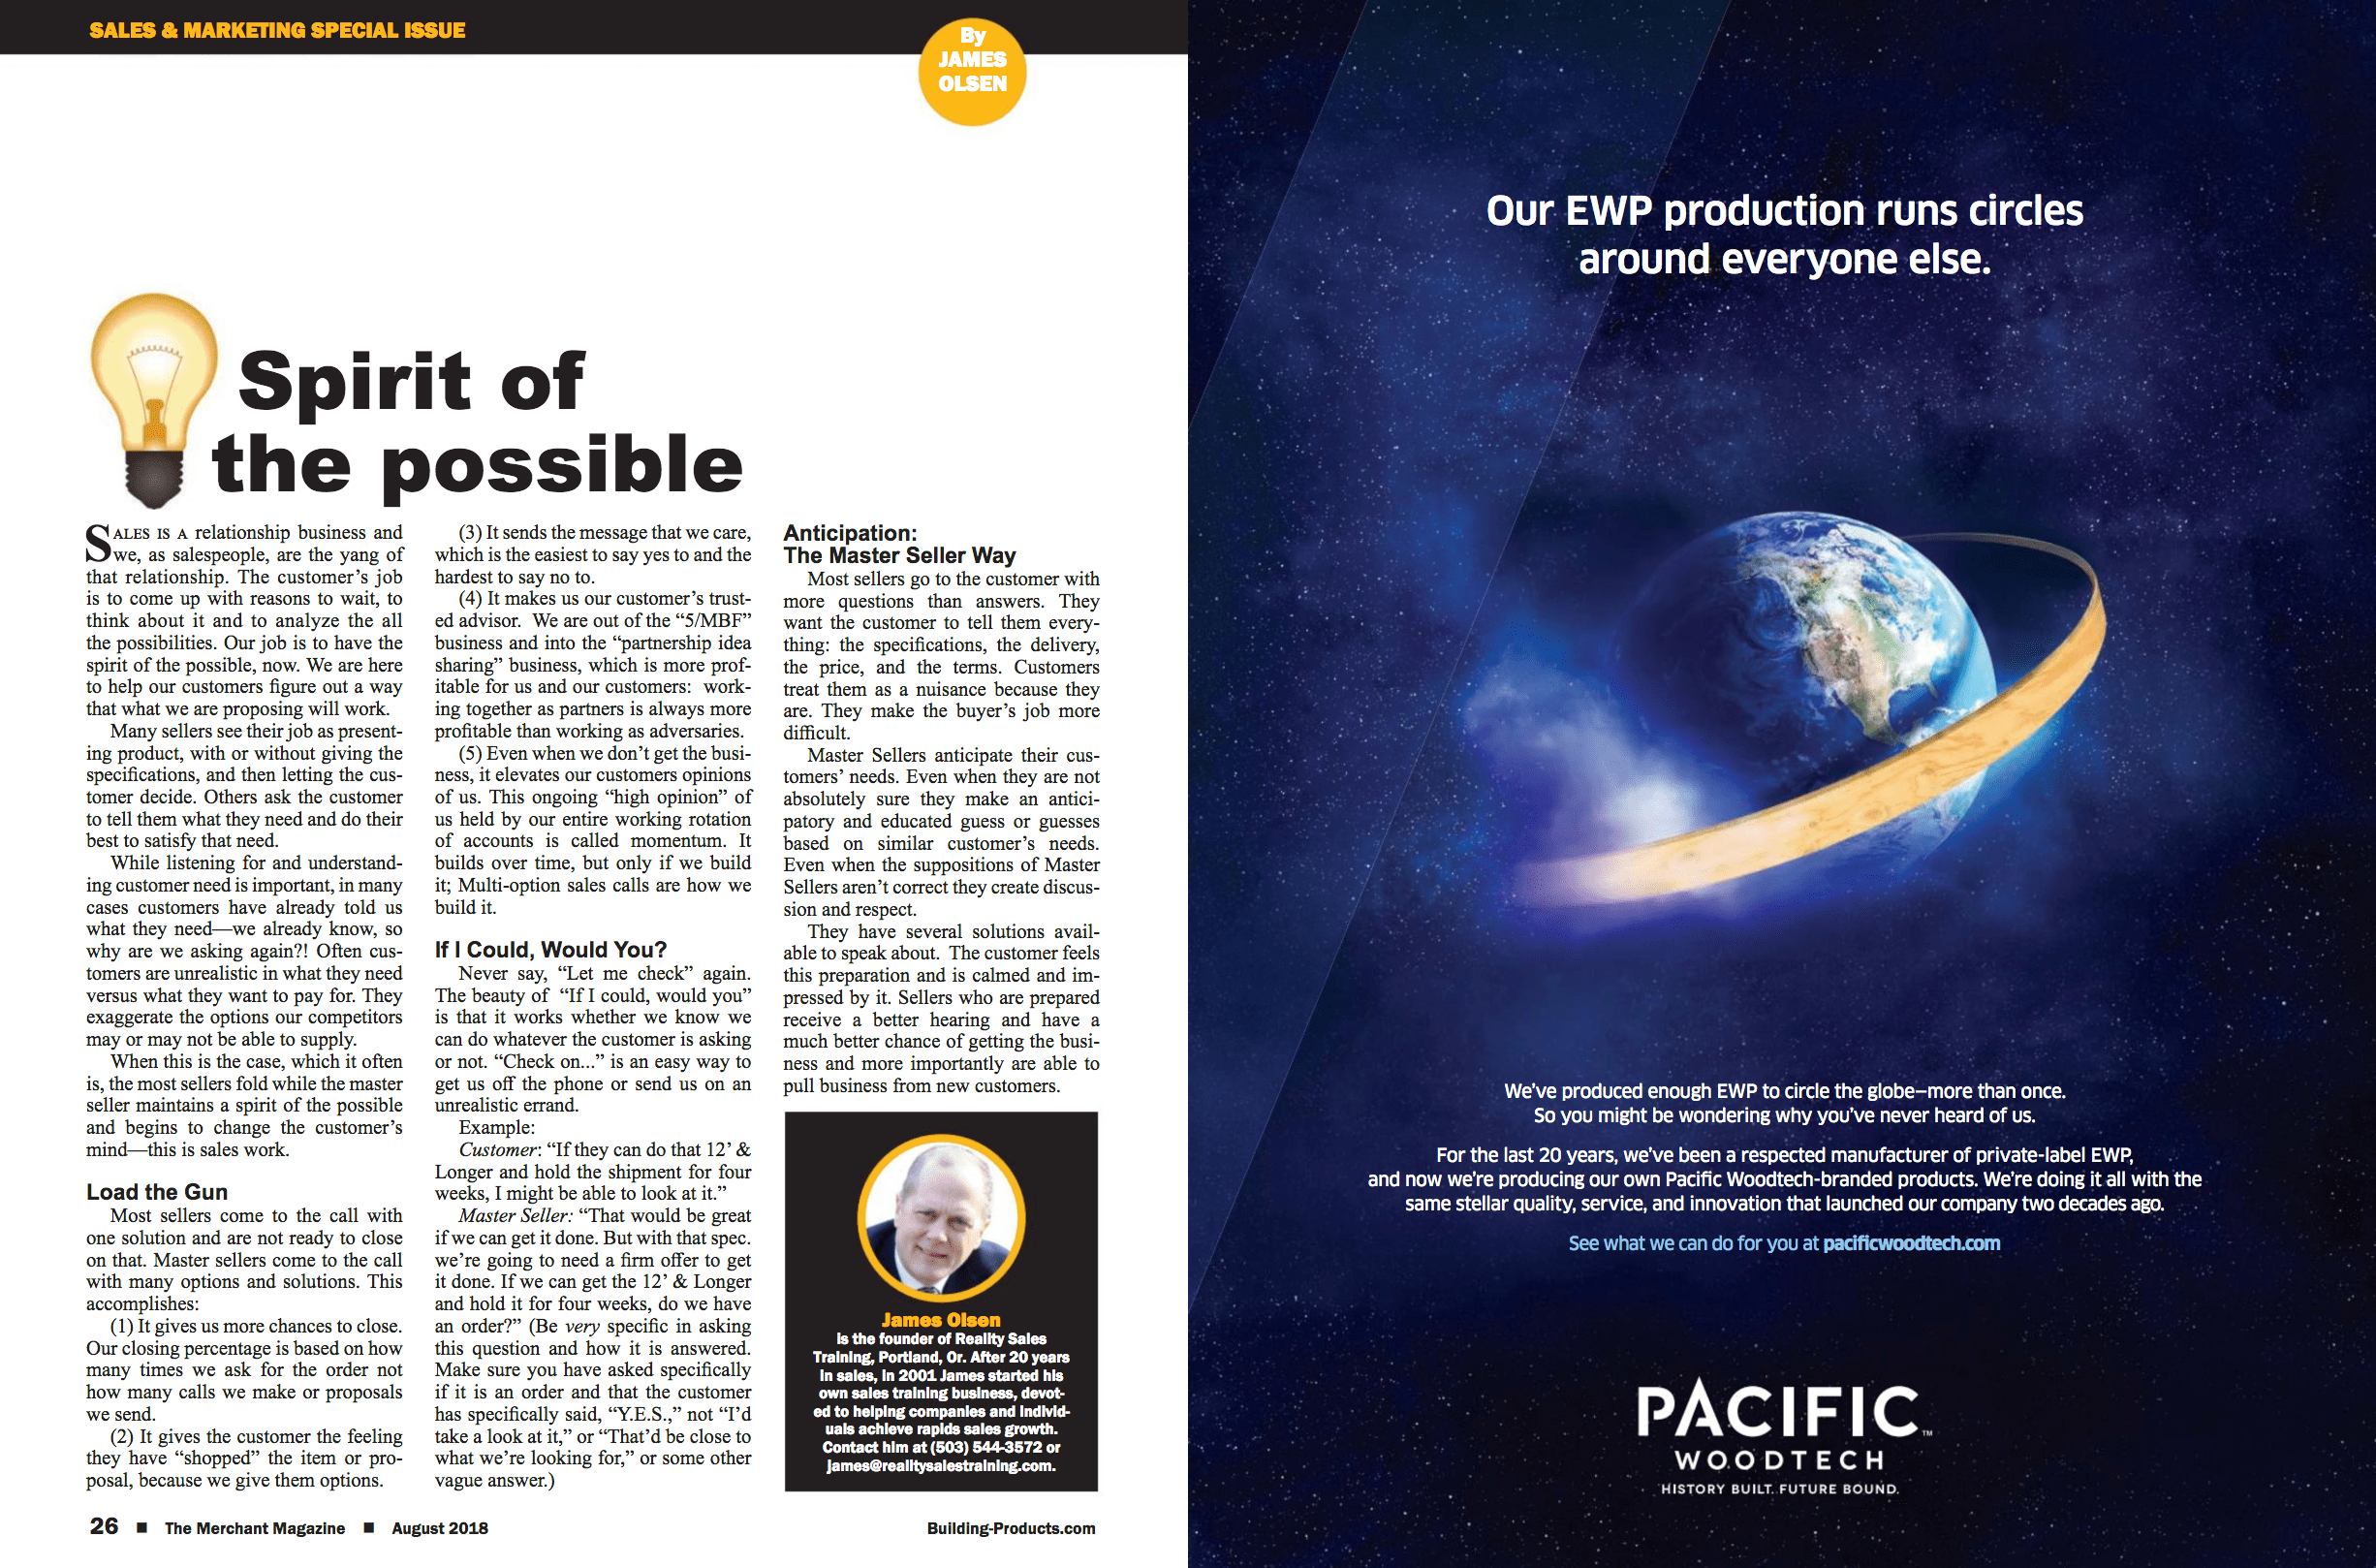 August 2018 edition of The Merchant Magazine